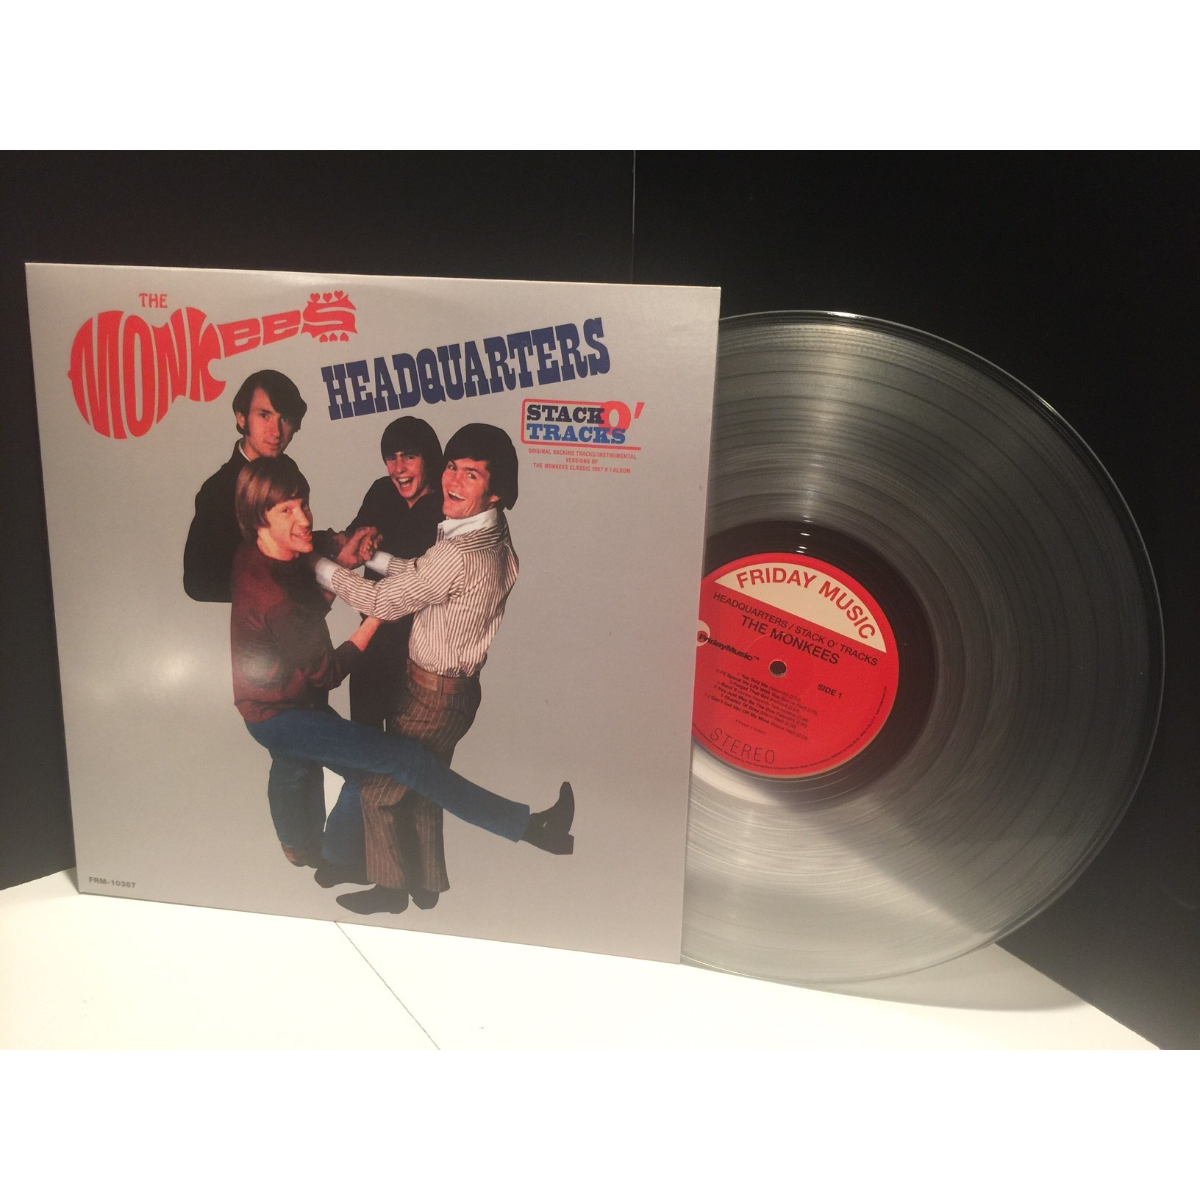 The Monkees - Headquarters Stack-O-Tracks Clear LP